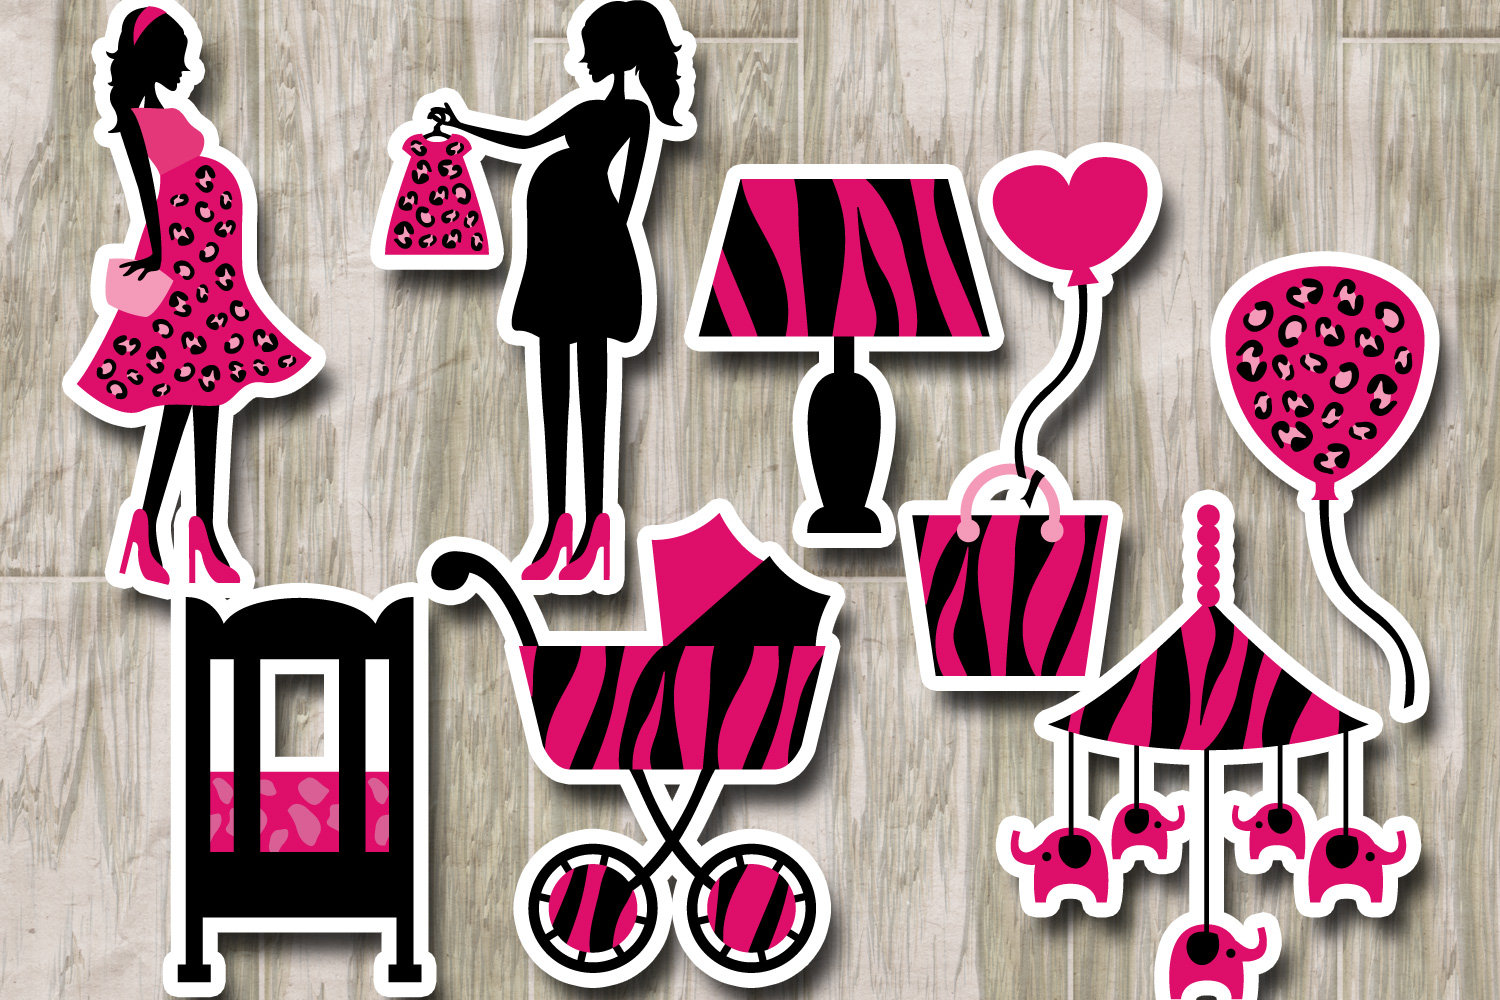 Mom to be safari animal prints pink black - Baby Shower example image 2